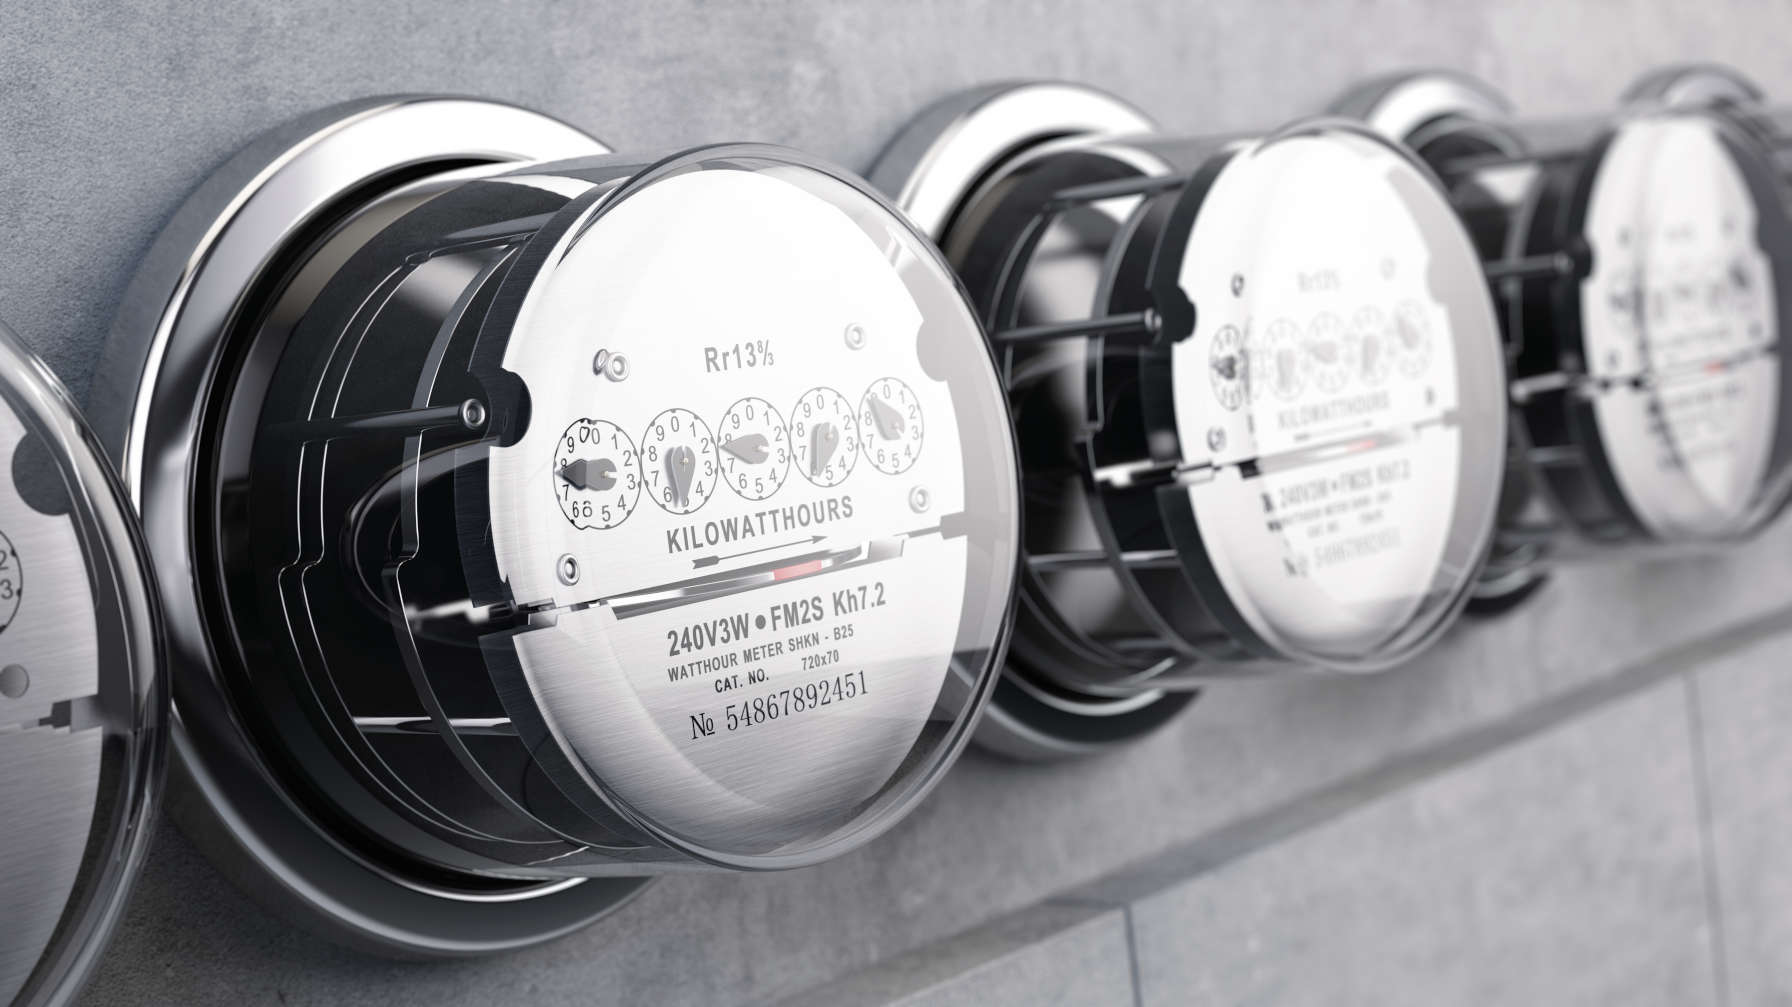 The differences between civil and industrial electrical systems